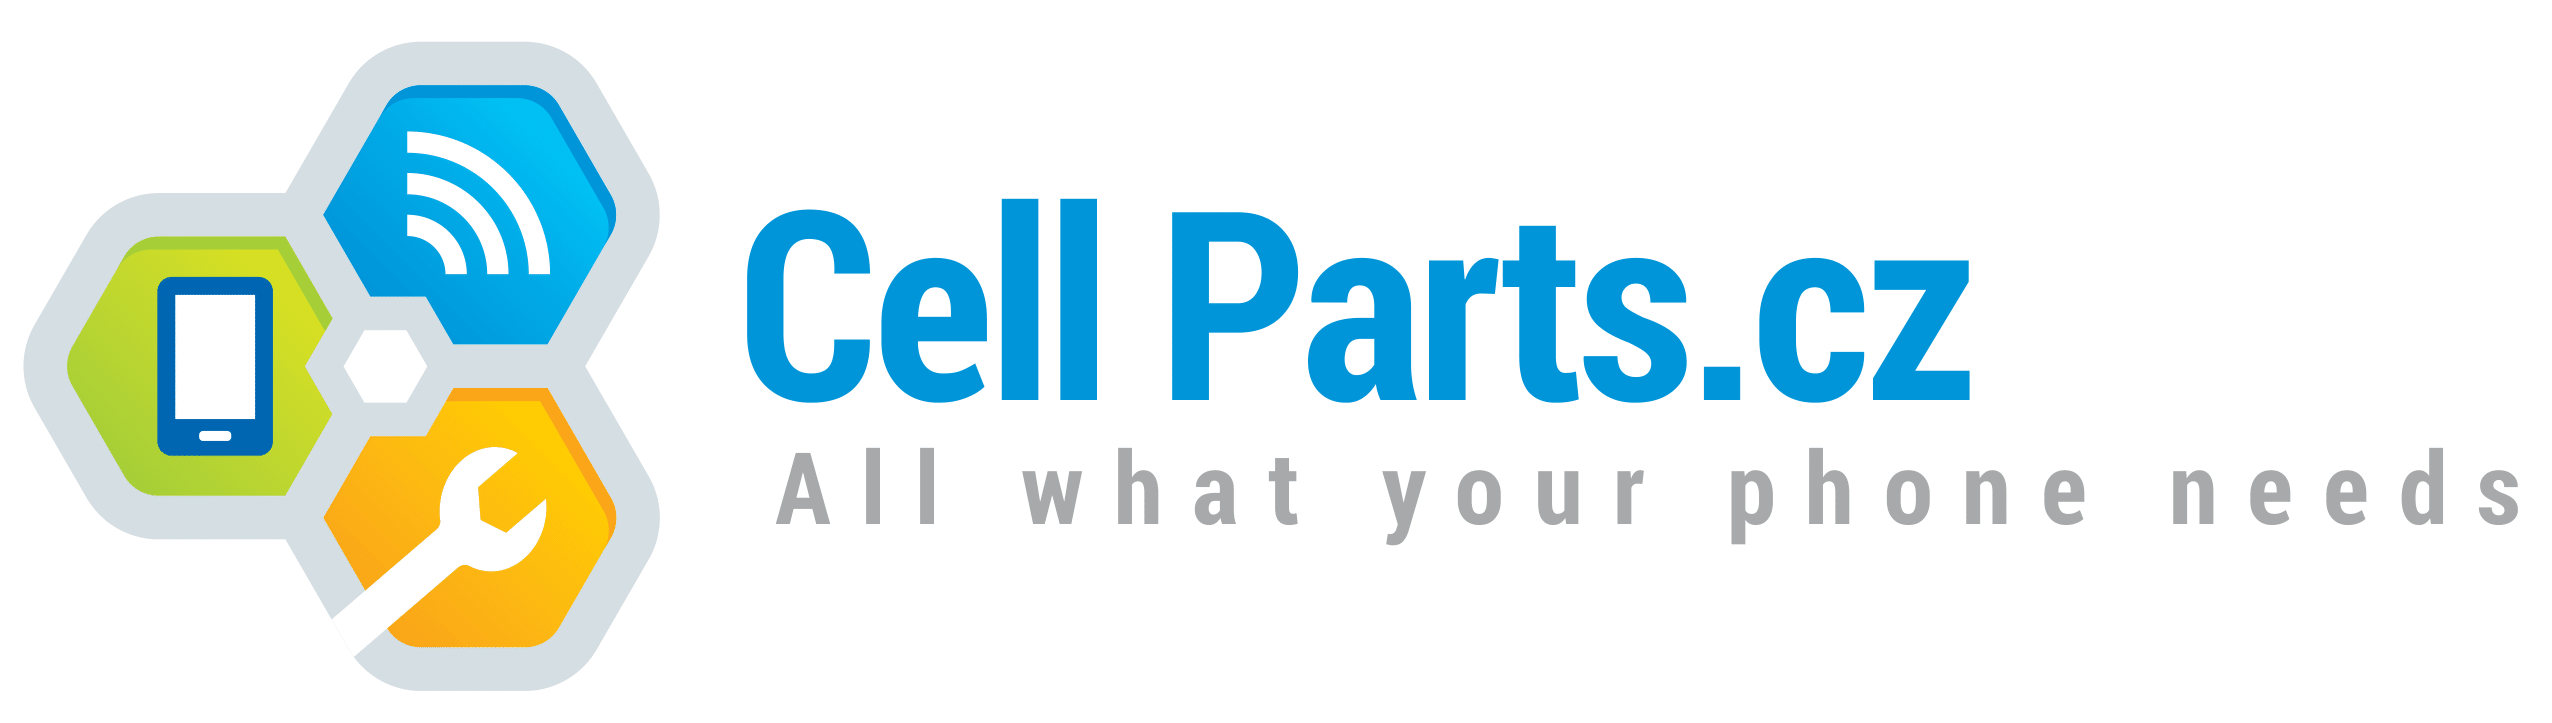 CELL PARTS.cz